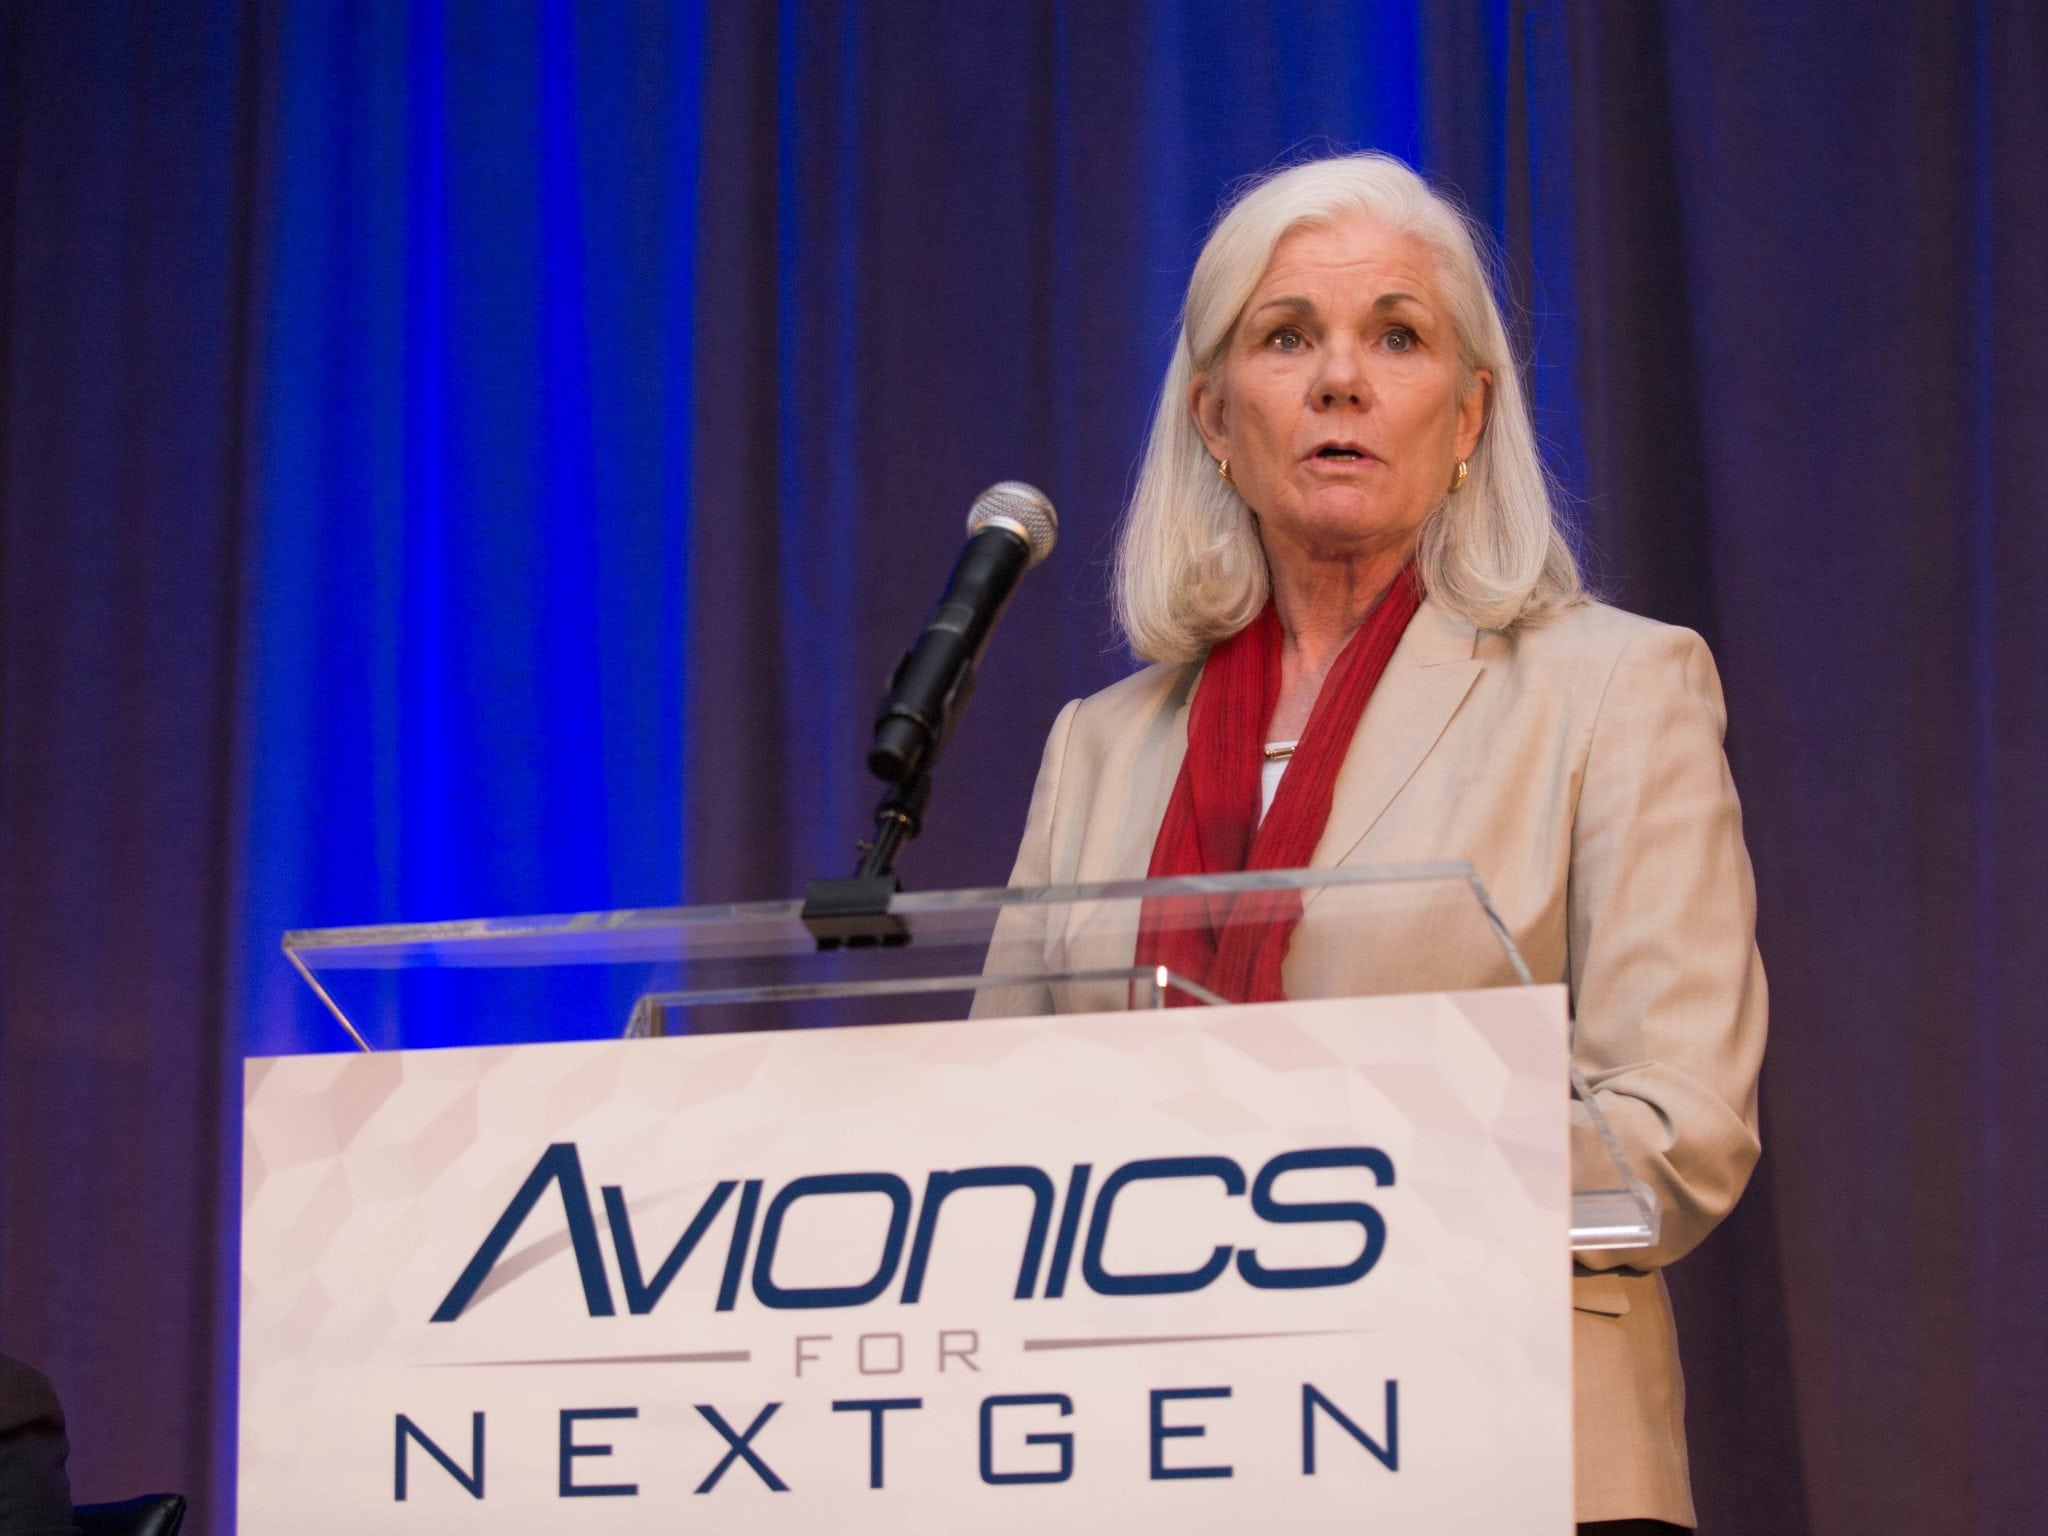 Caption: Mary McMillan, Vice President Aviation Safety and Operational Services, Inmarsat, speaks to upcoming flight tracking requirements during the Avionics for NextGen conference on Sept. 28.